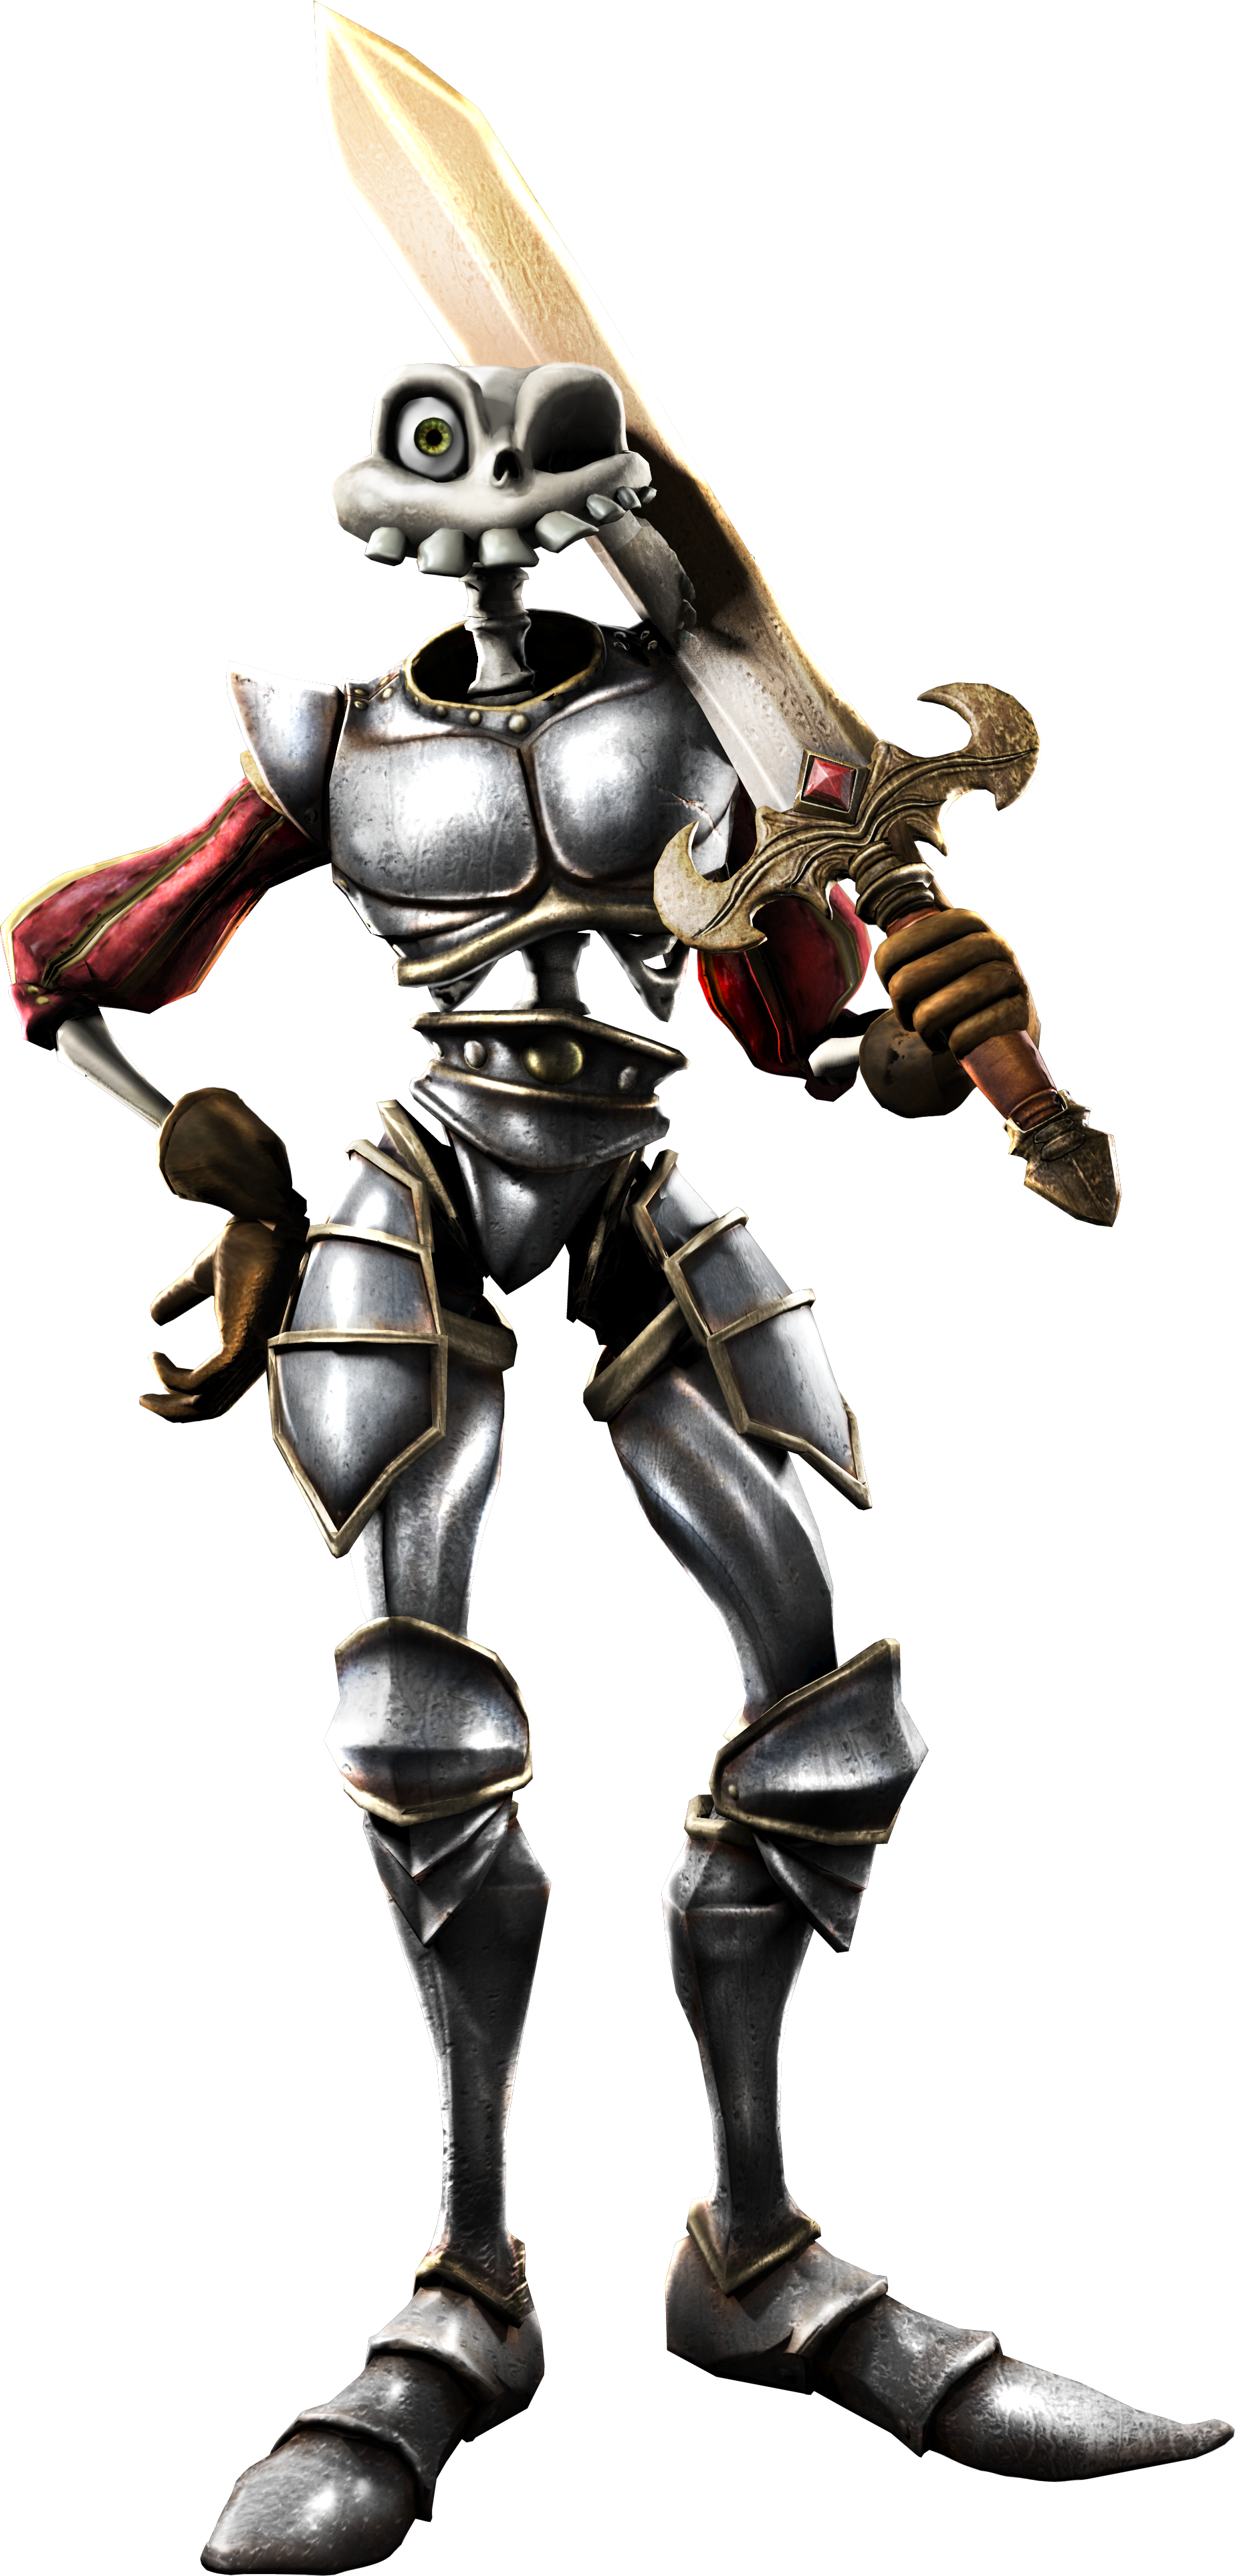 MediEvil_-_Sir_Daniel_Fortesque_as_seen_in_PlayStation_All-Stars_Battle_Royale.png